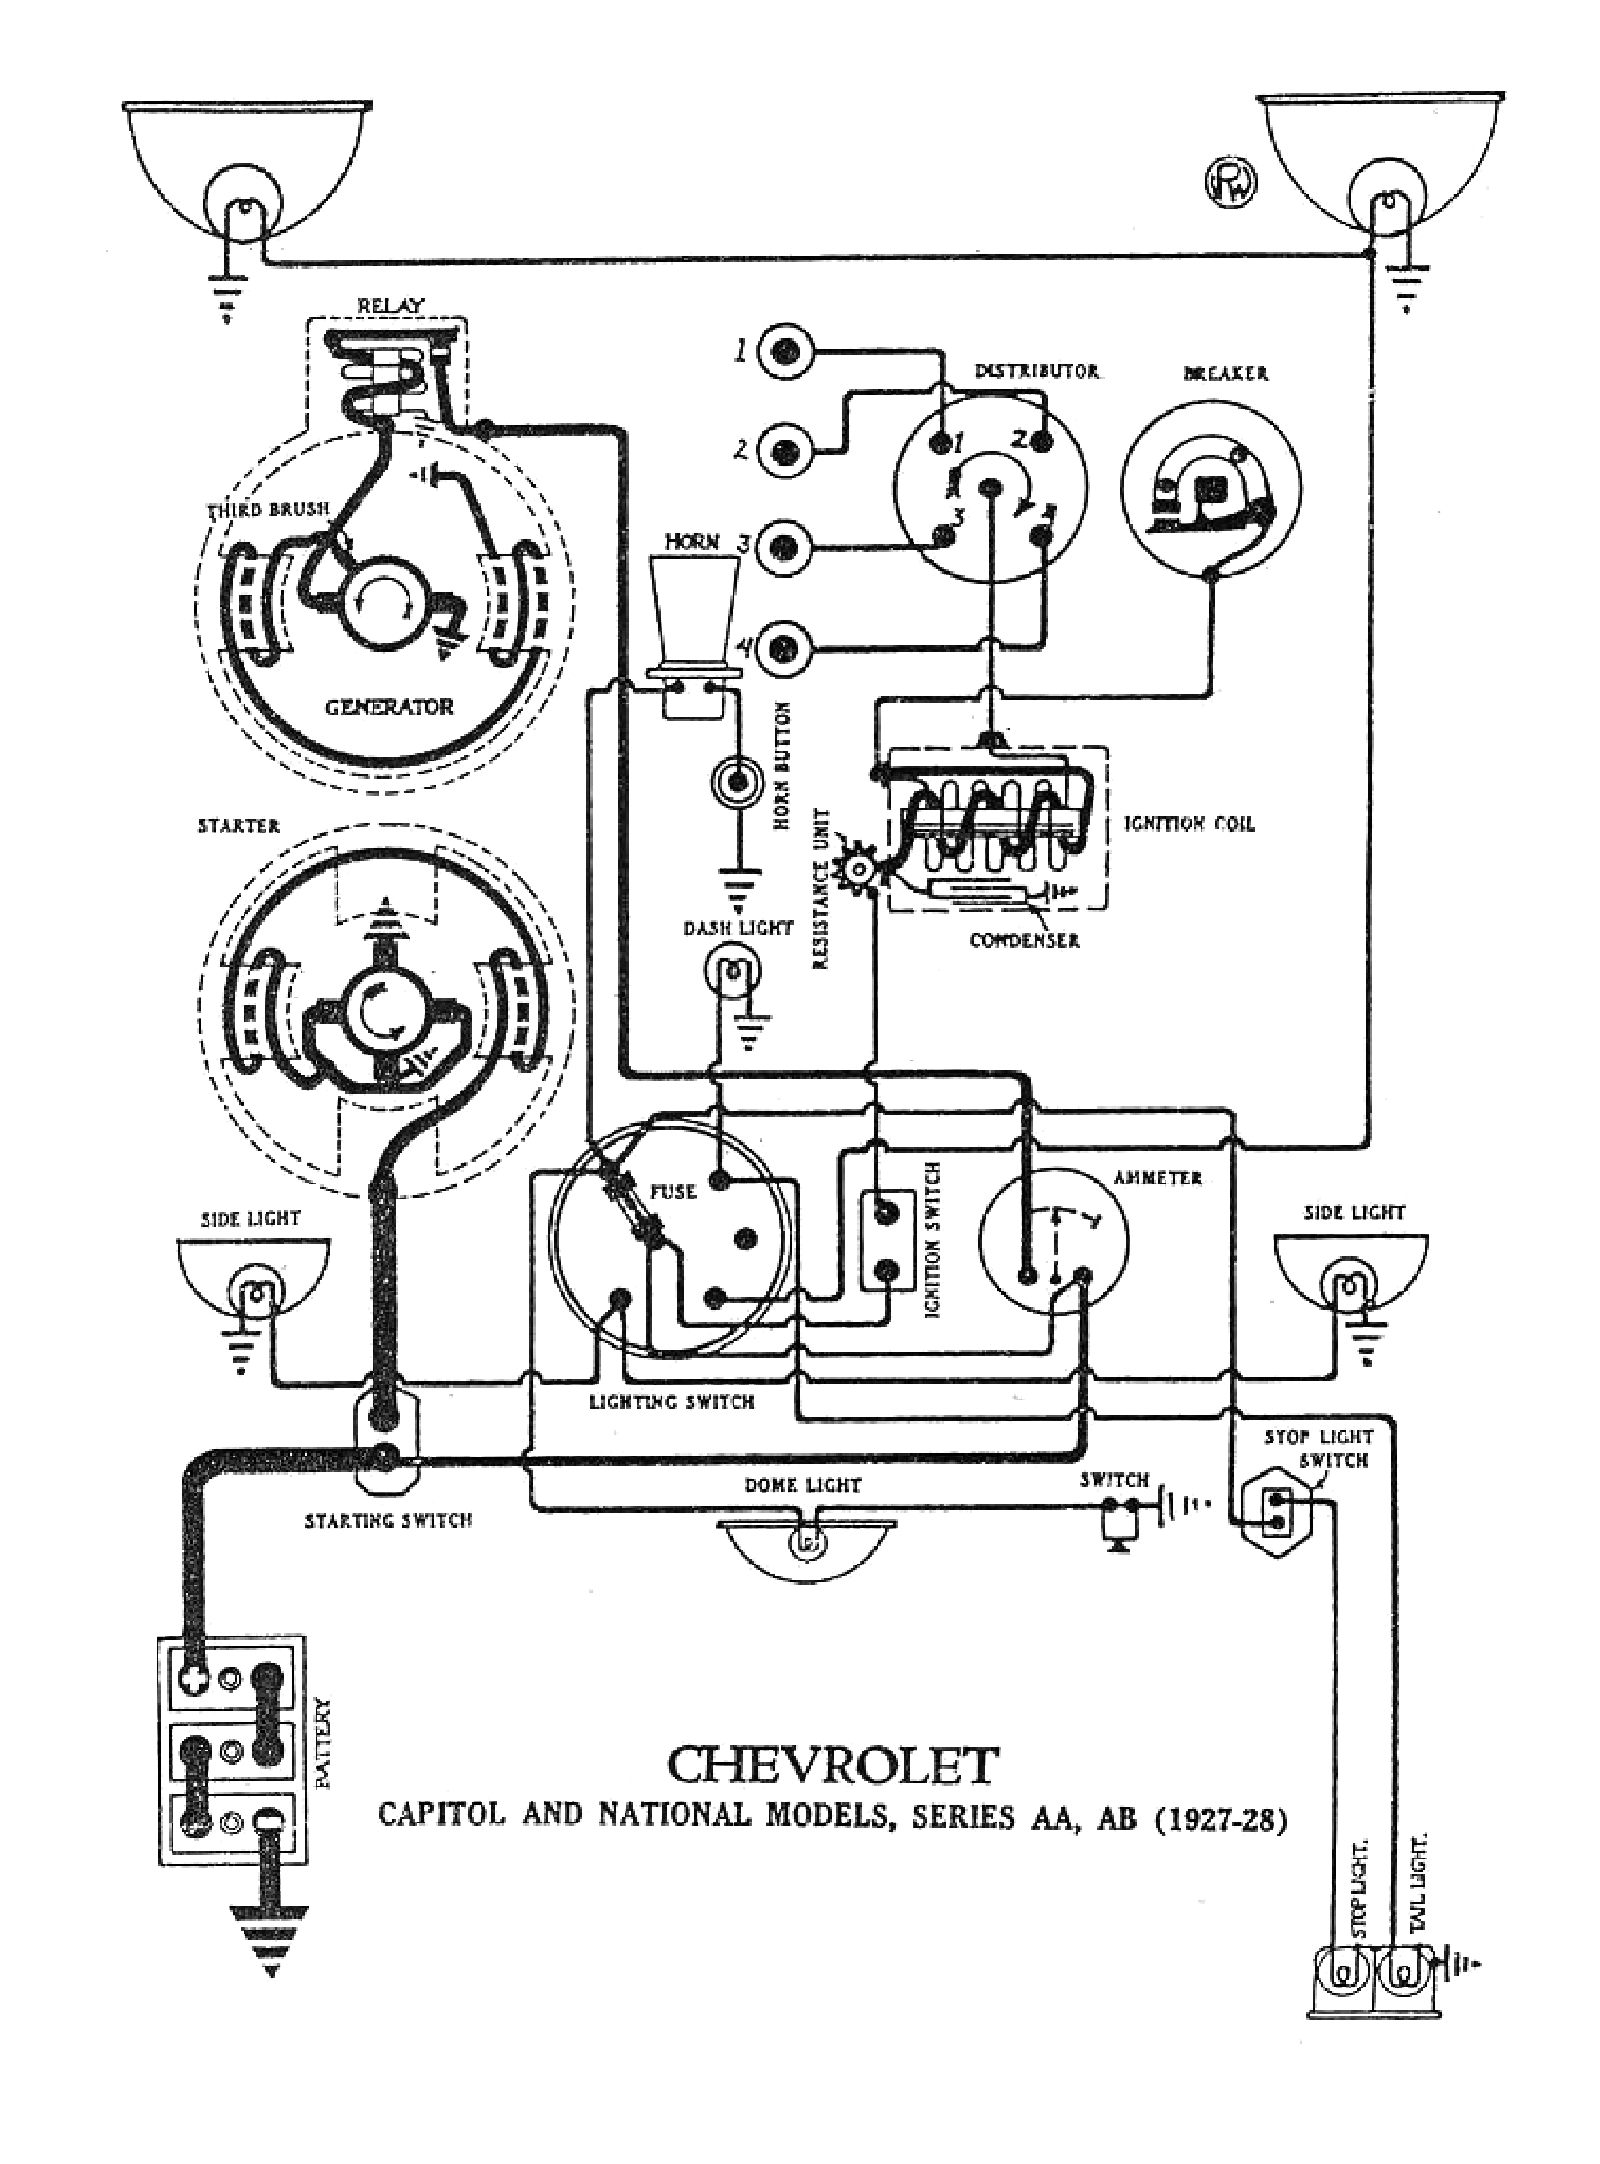 Wiring Diagram For A 1937 Chevy Truck Libraries Kia Sorento D4cb Engine Diagrams Ford Detailed Diagram1937 Todays 500